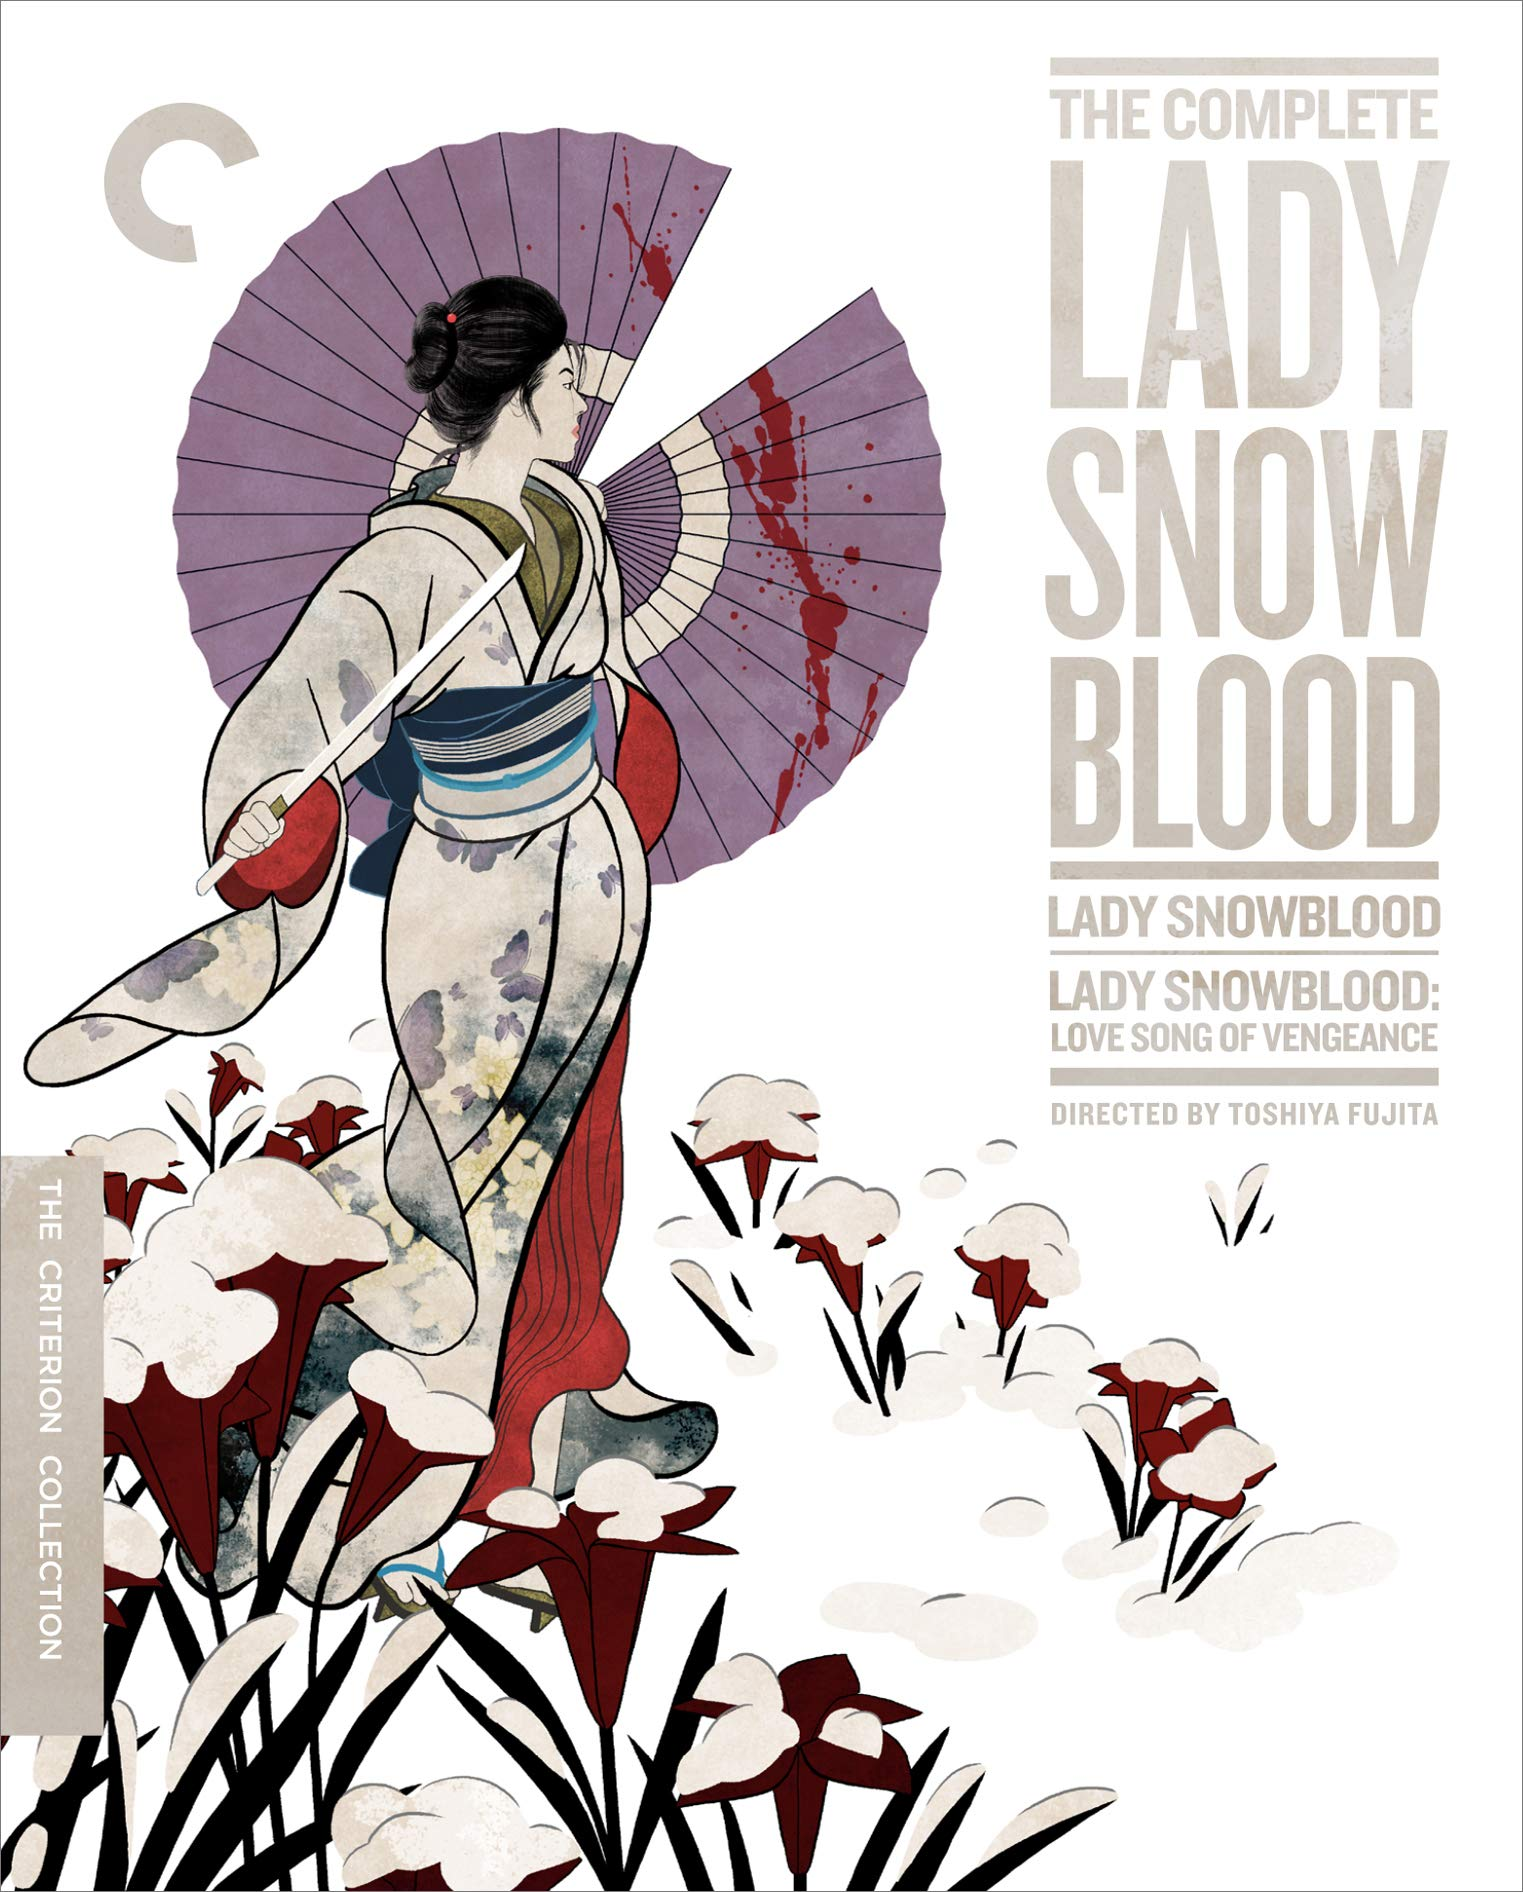 The Complete Lady Snowblood (The Criterion Collection) [Blu-ray] by Criterion